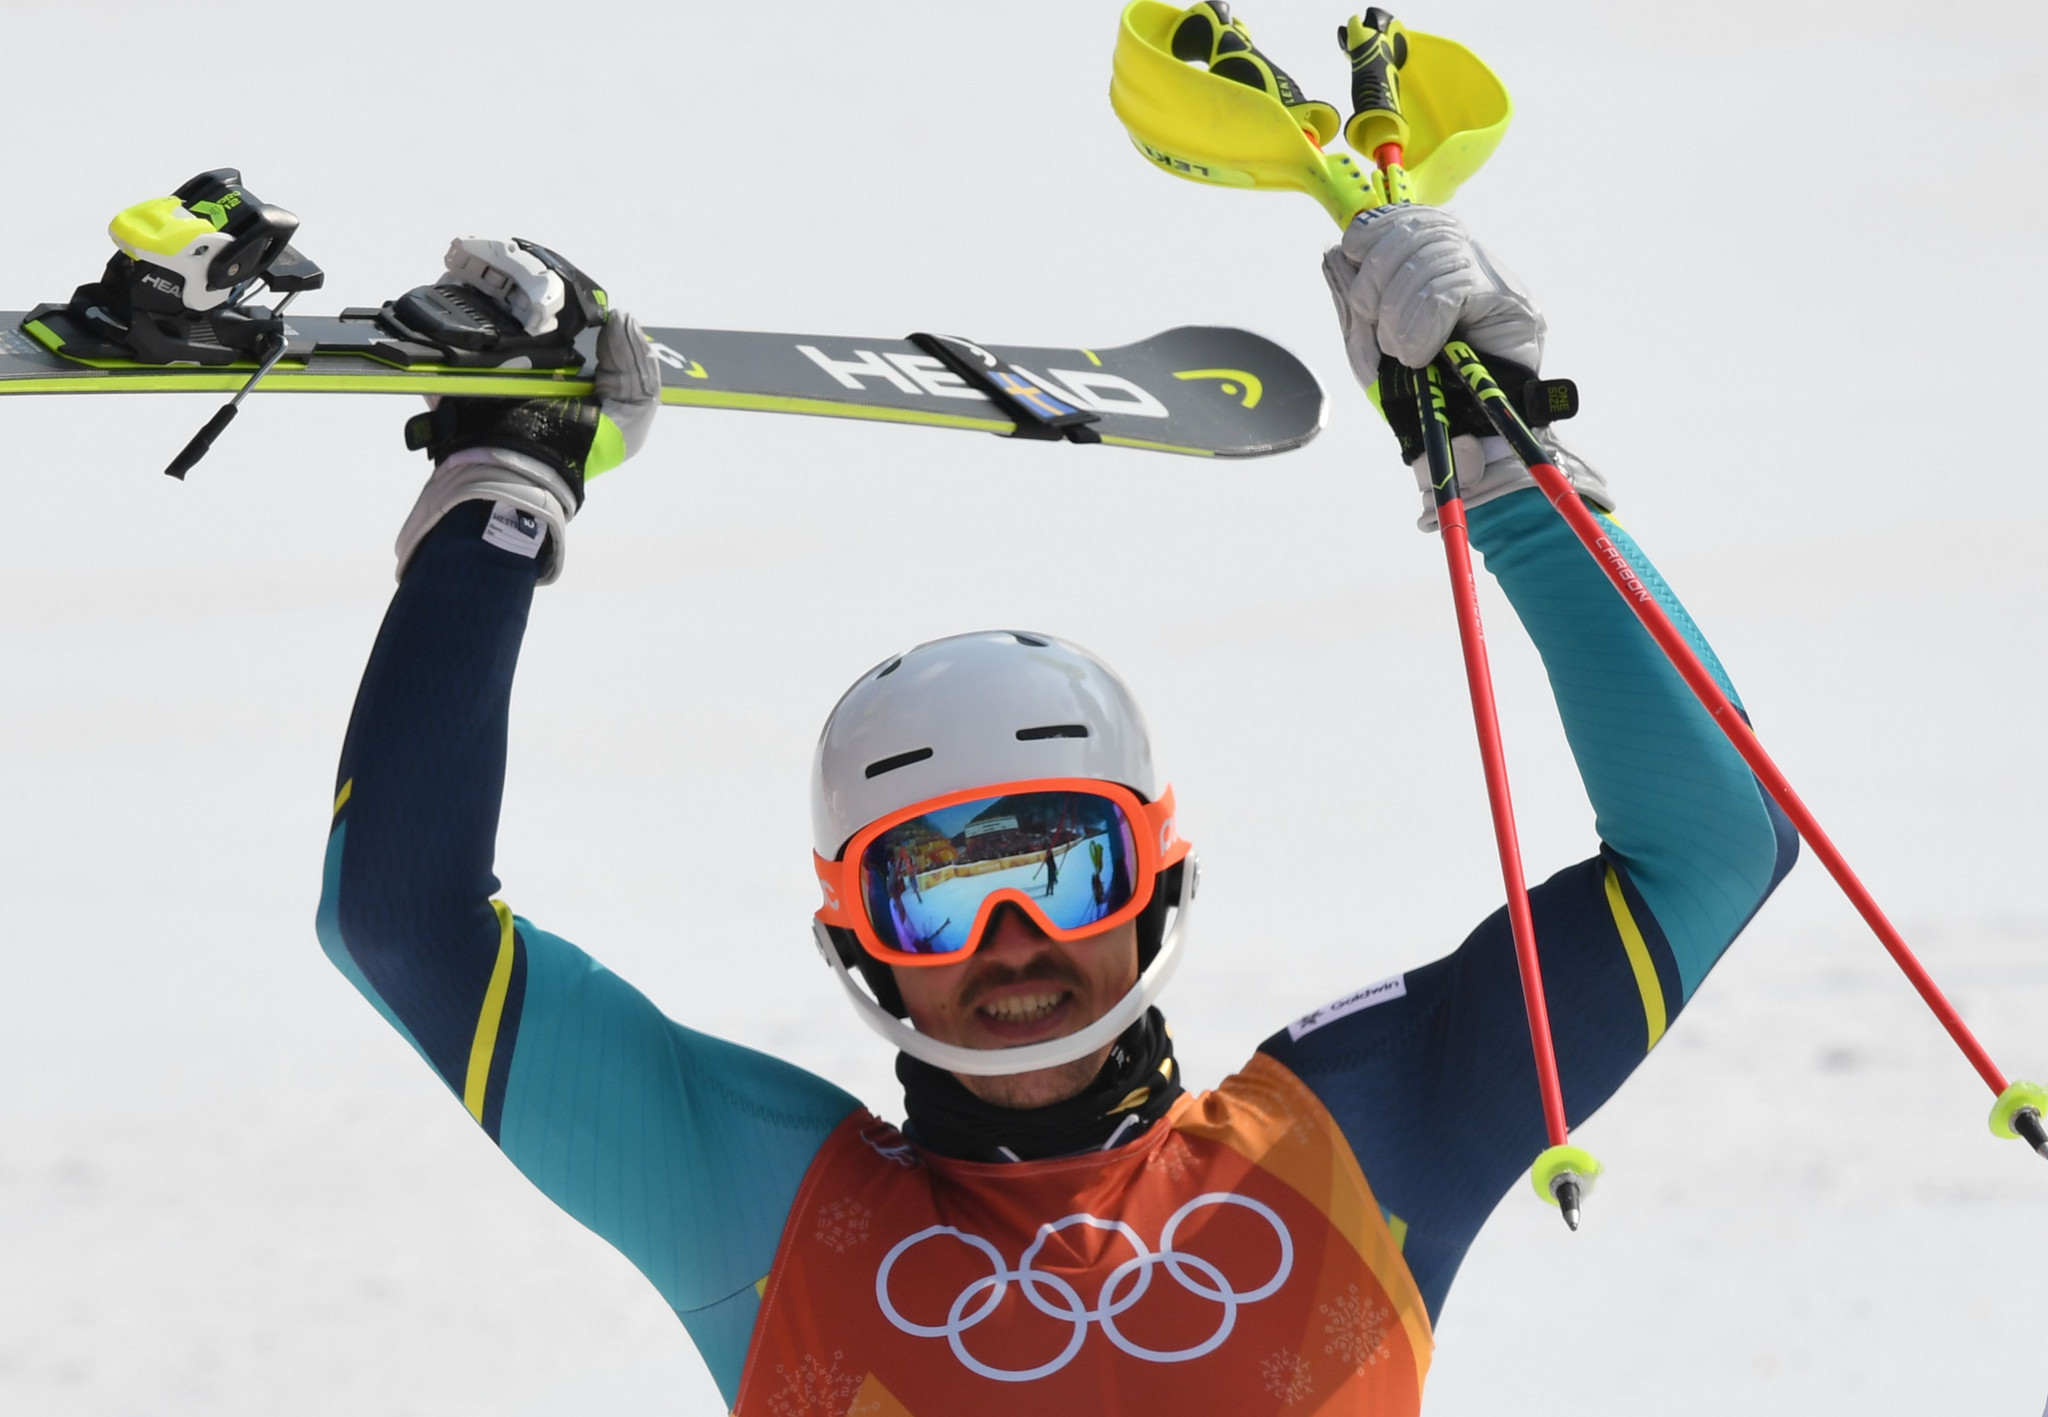 Sweden's Myhrer claims surprise men's slalom Olympic gold at Pyeongchang 2018